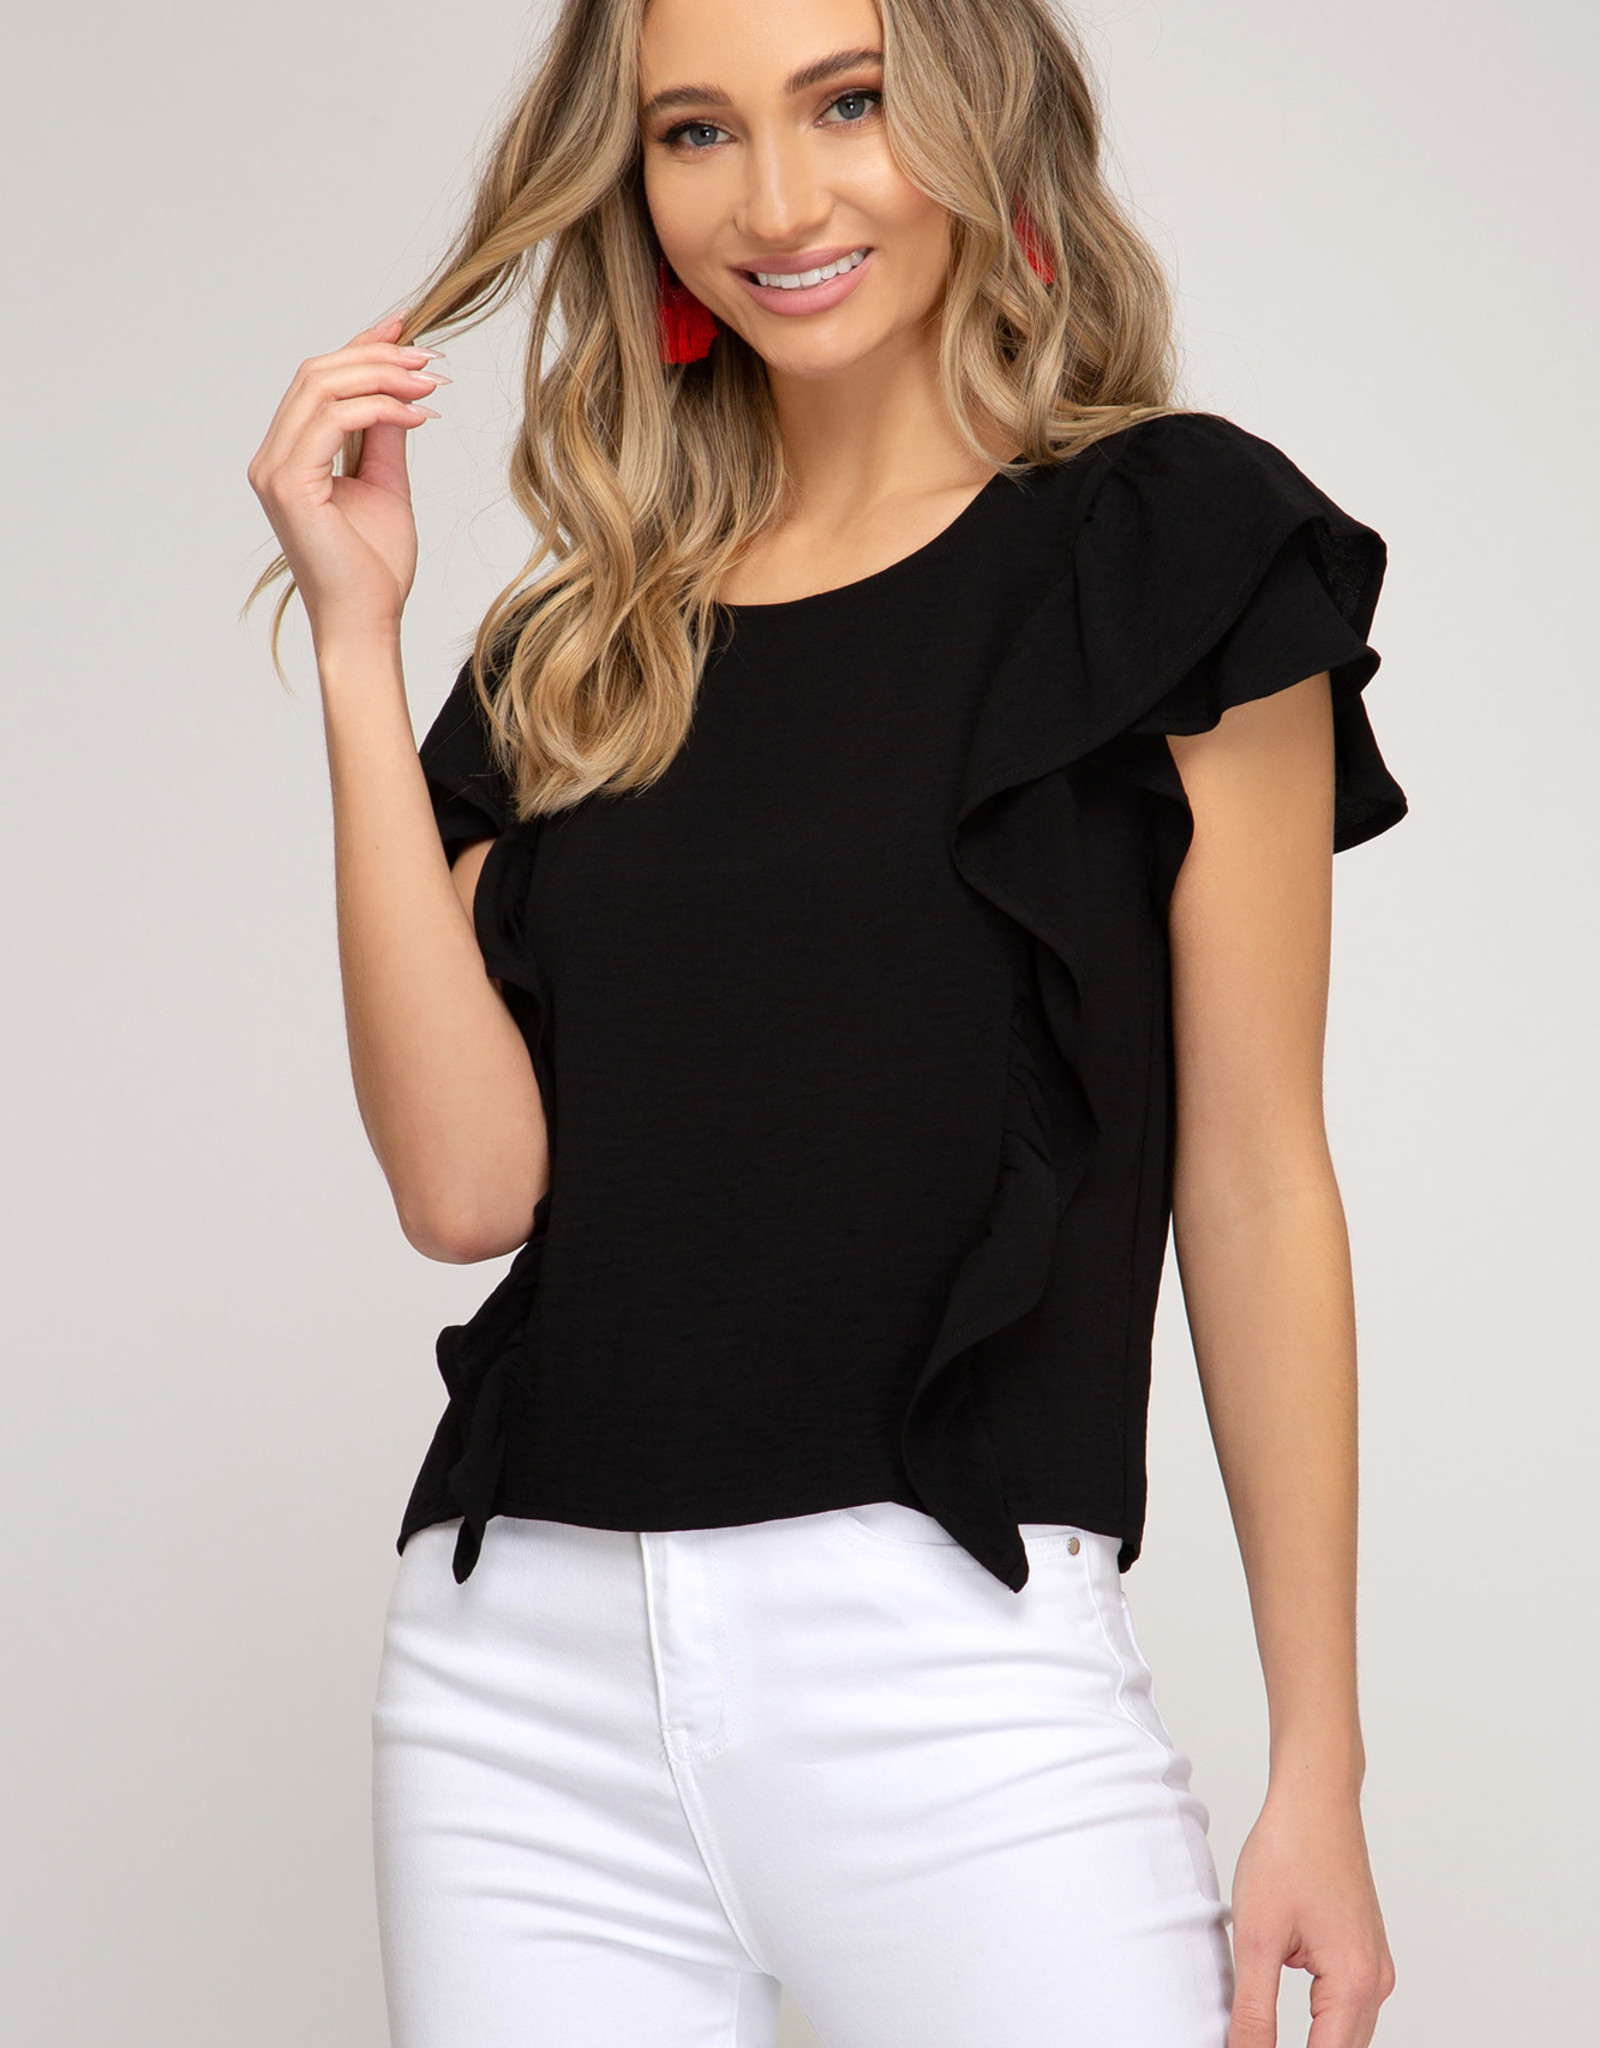 Ladies' Fashions Flutter Short Sleeve Top